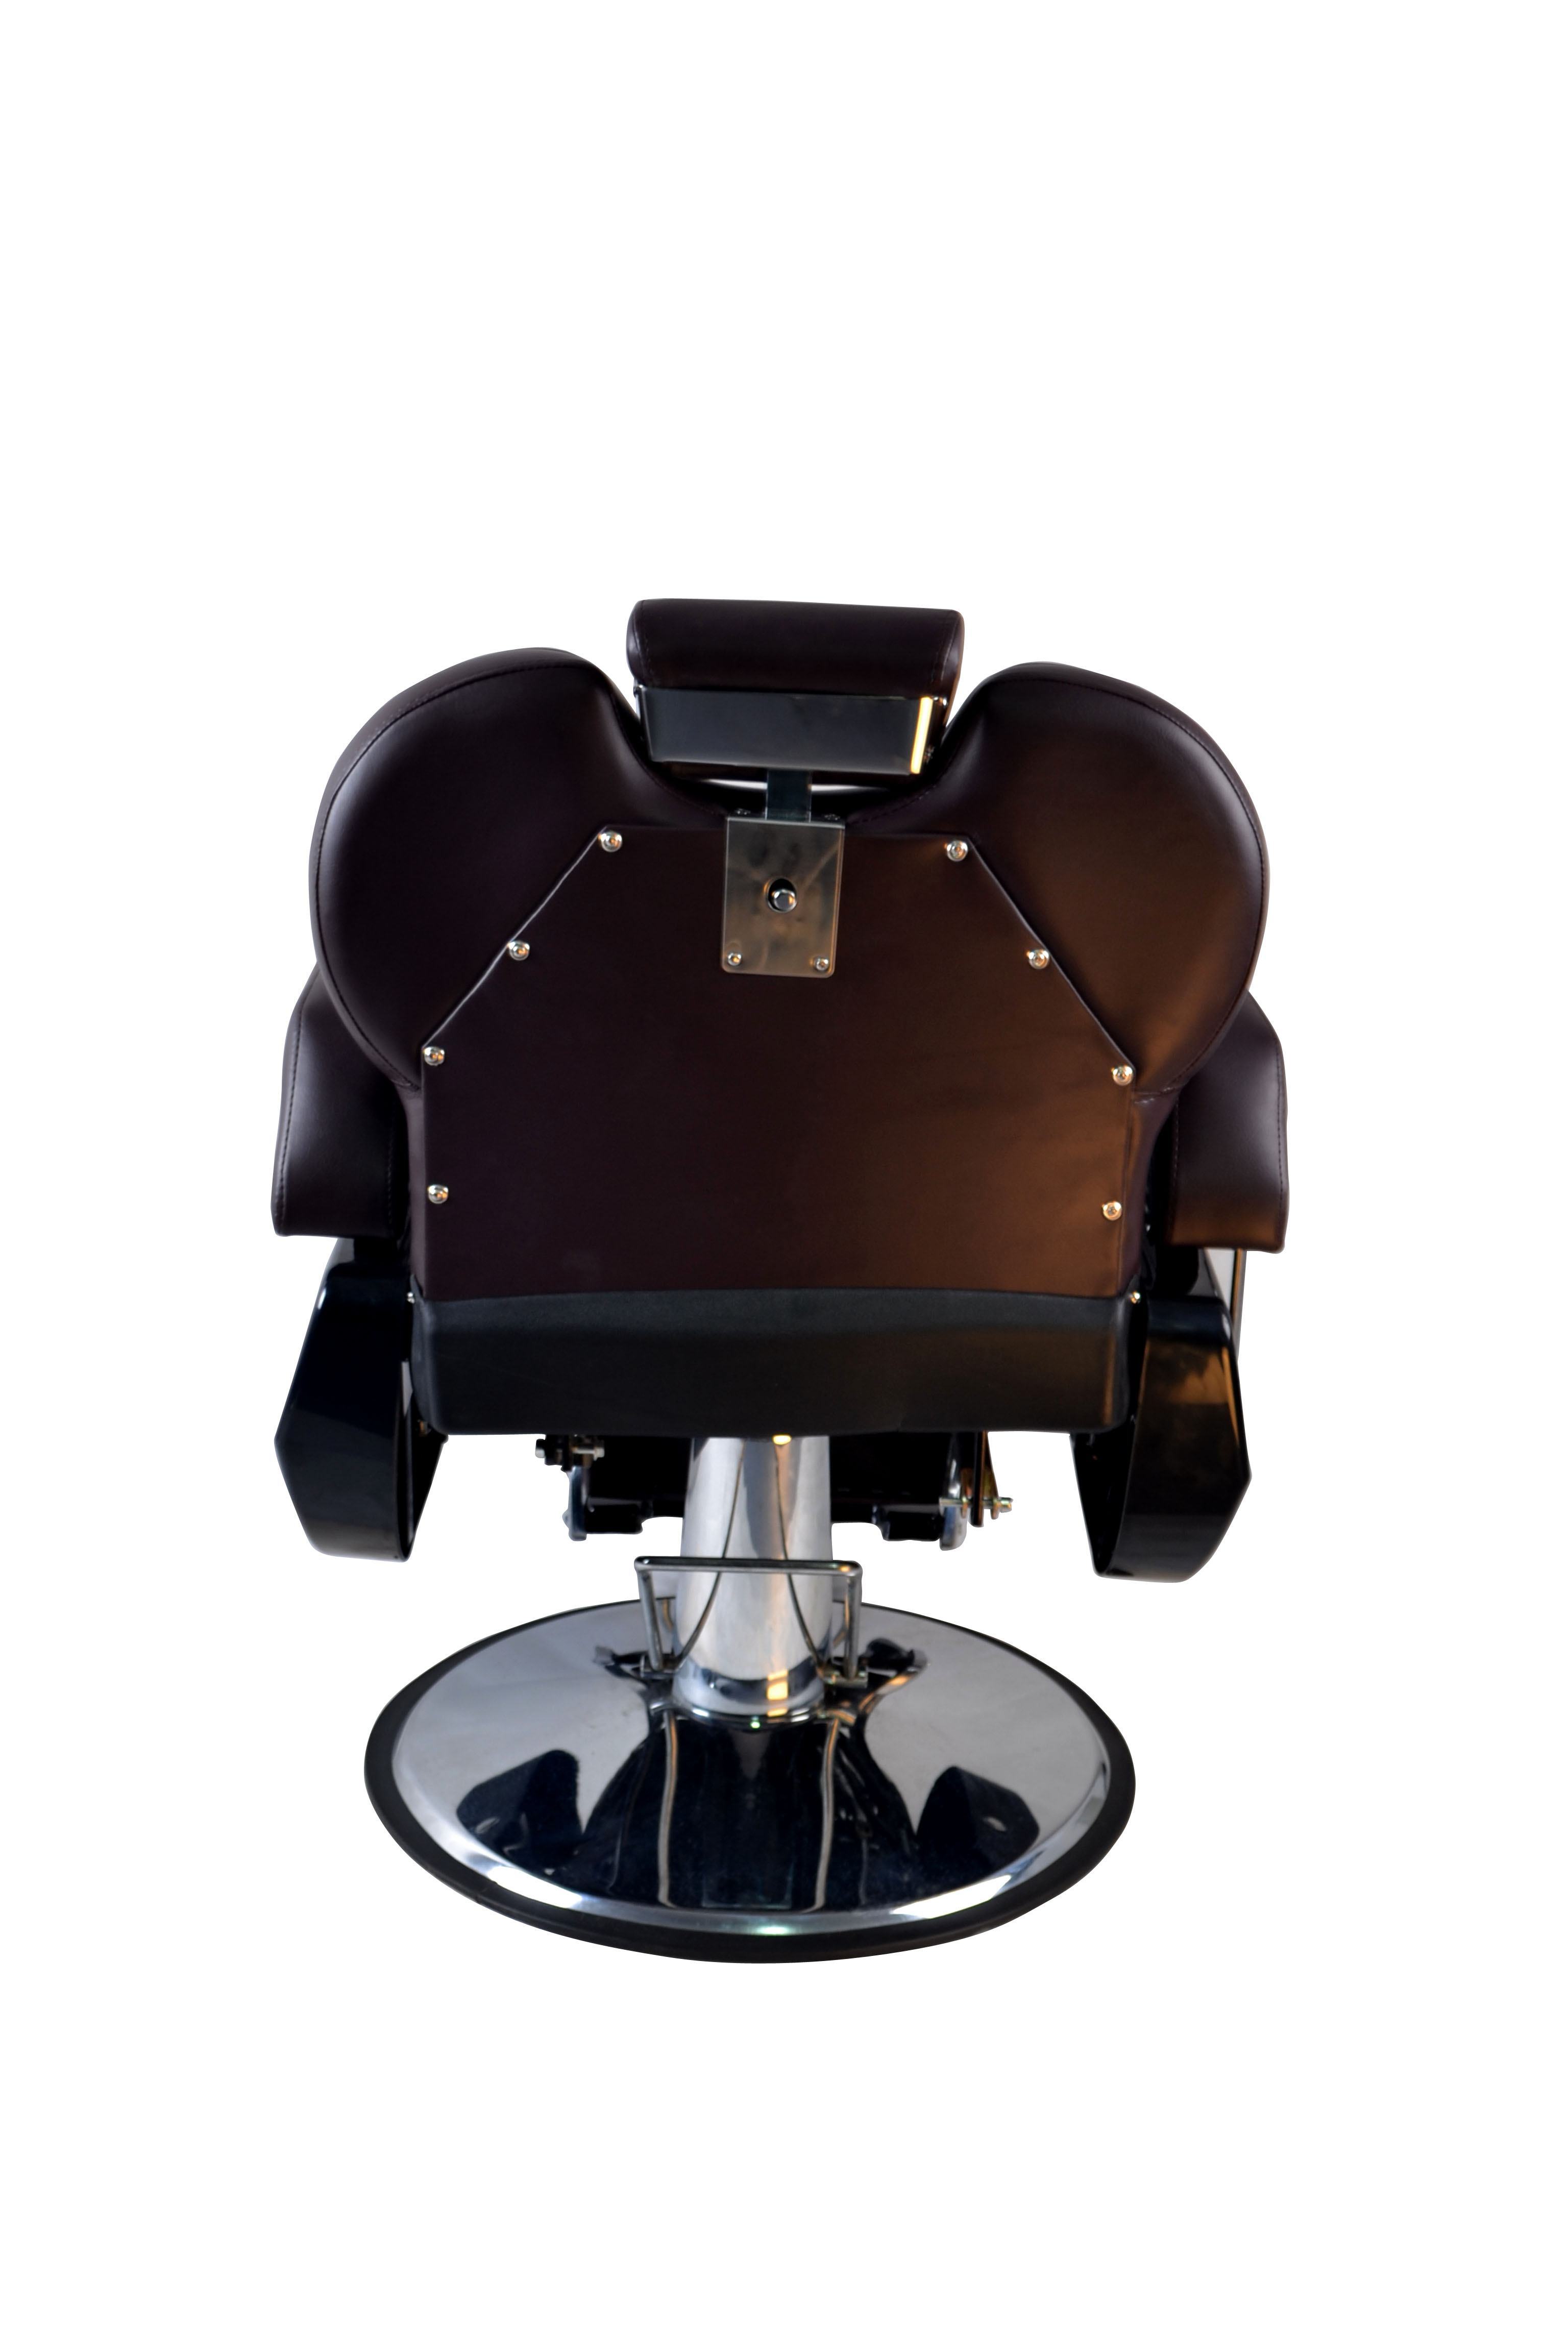 BarberPub All Purpose Hydraulic Recline Barber Chair Salon Beauty Spa 8702 Brown 21